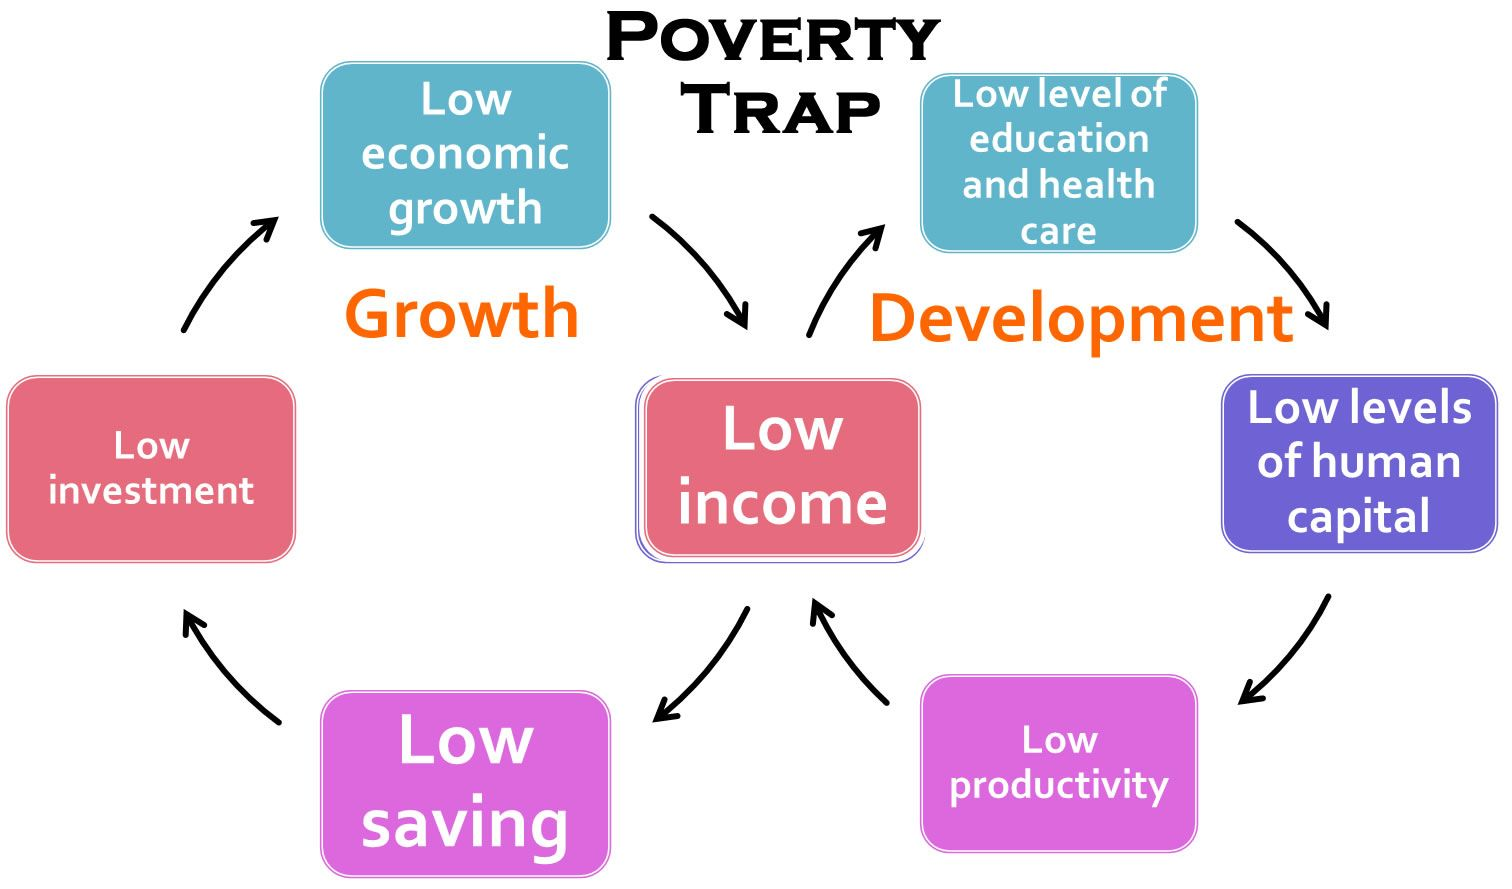 Cycle Of Poverty Theory Diagram Illustrates